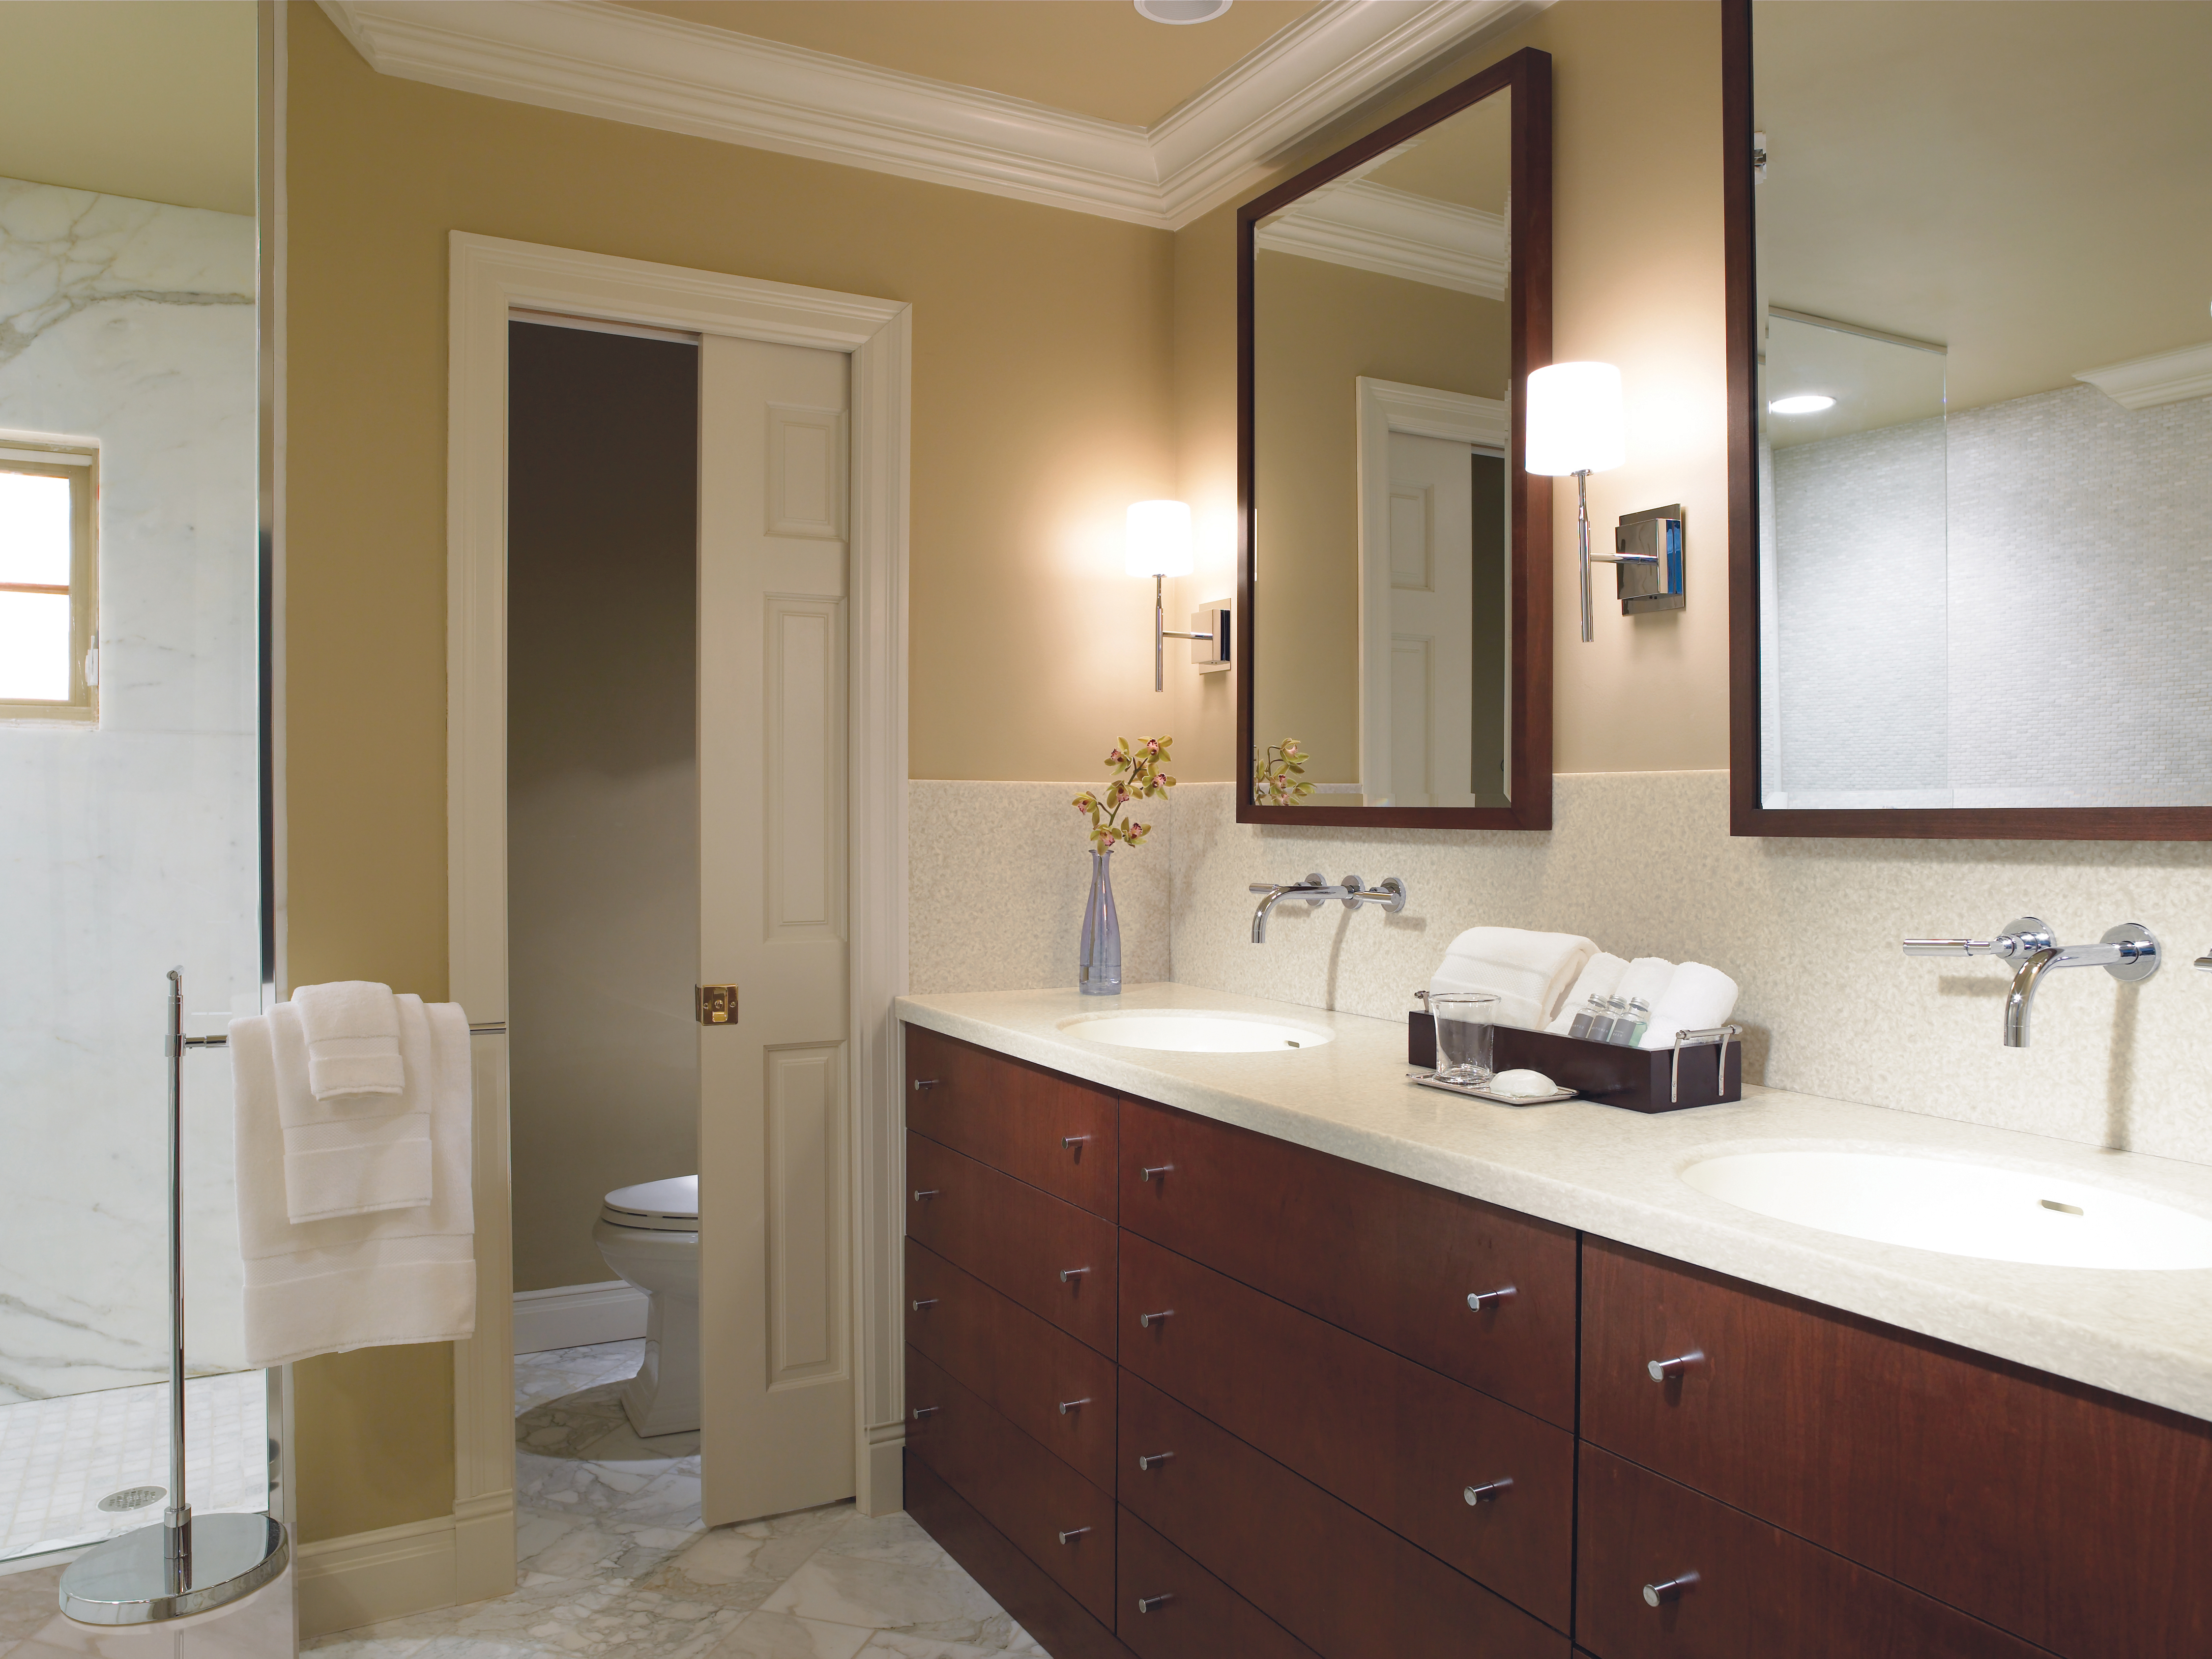 Delighted Small Corner Mirror Bathroom Cabinet Tiny Large Bathroom Wall Tiles Uk Round Bathroom Vanities Toronto Canada Bathroom Mirrors Frameless Youthful Master Bath Tile Design Ideas OrangeBath And Shower Enclosures Choosing Bathroom Countertops | HGTV